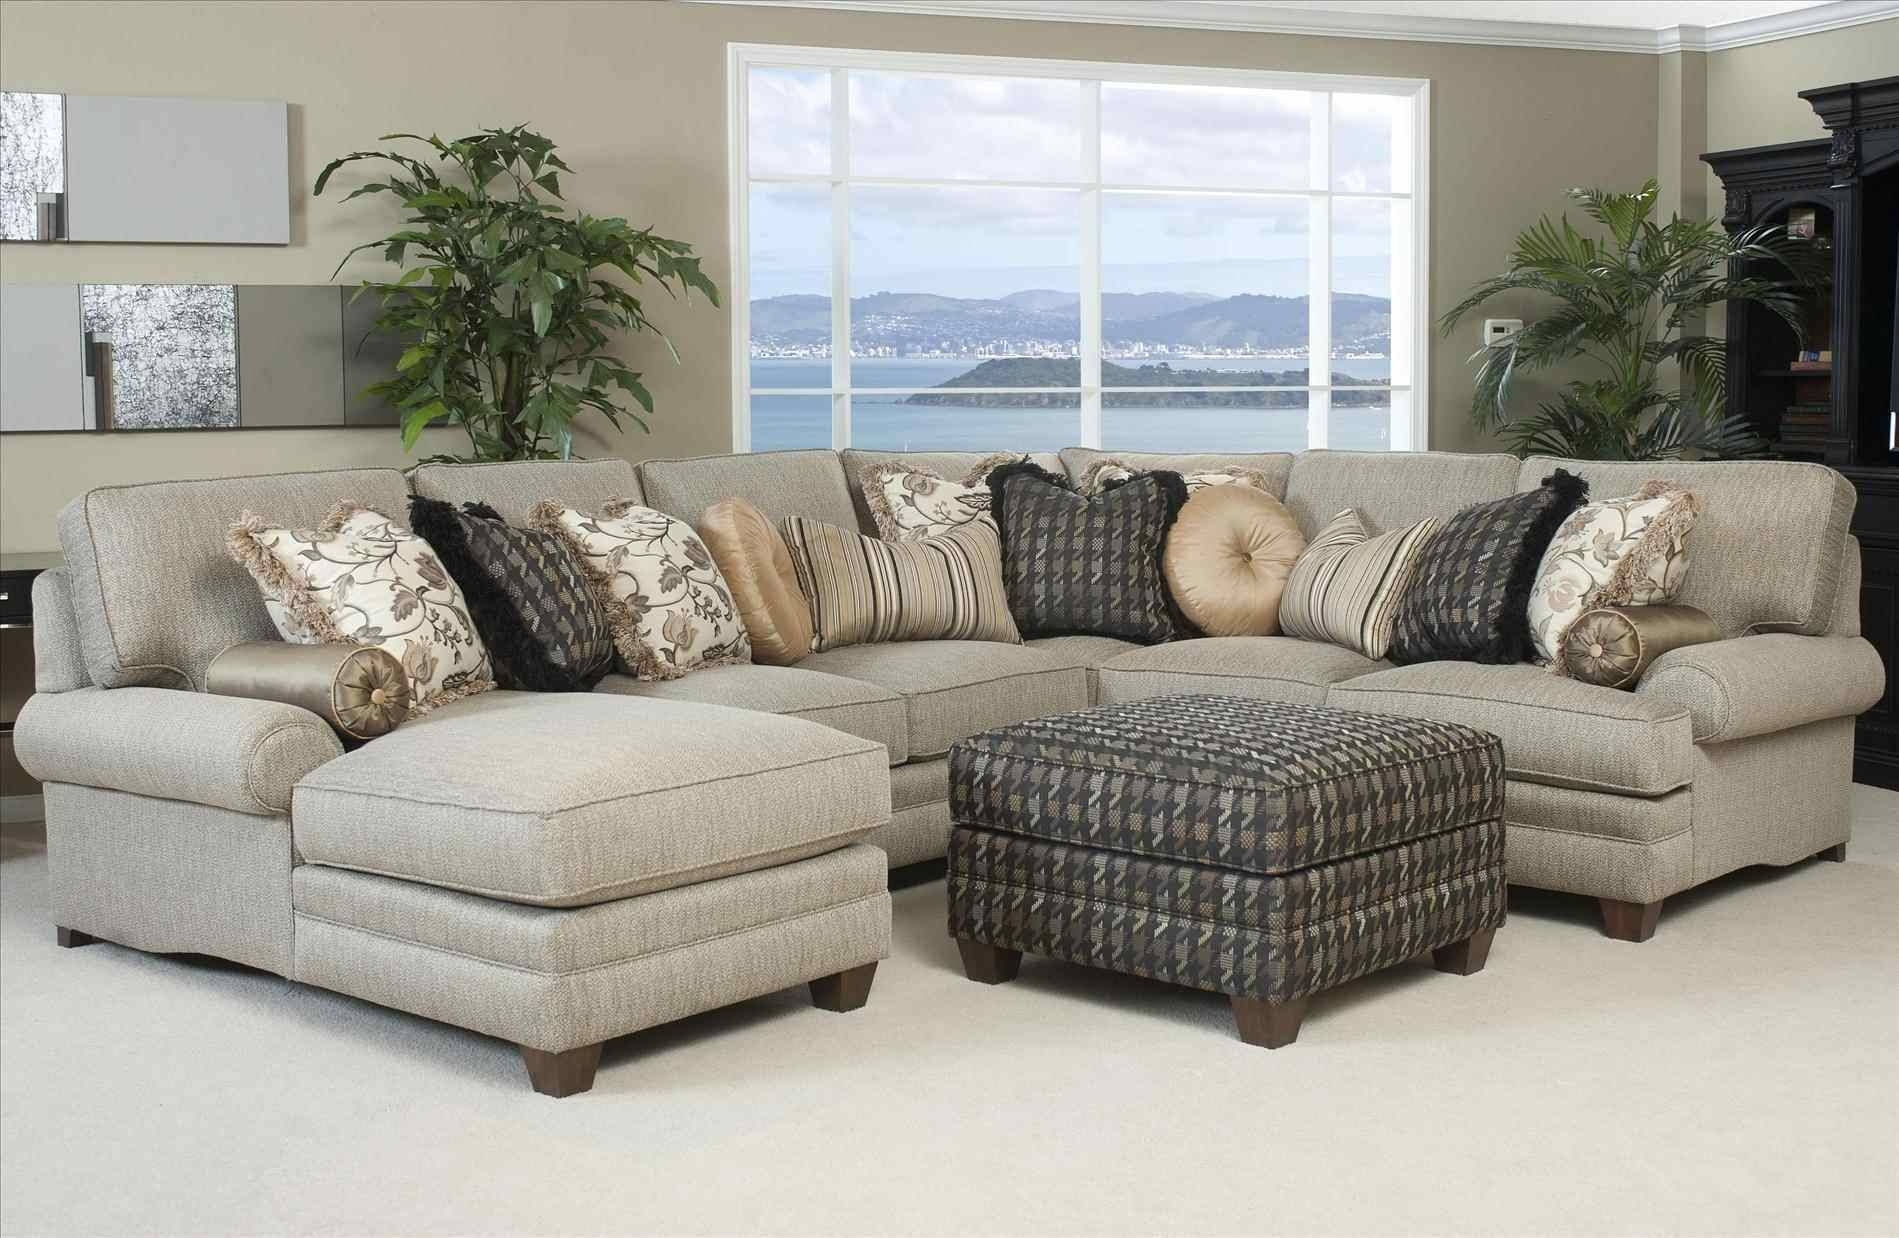 Sectional Sofas Denver | Chikara-Do-Reiki with regard to Denver Sleeper Sofas (Image 9 of 15)